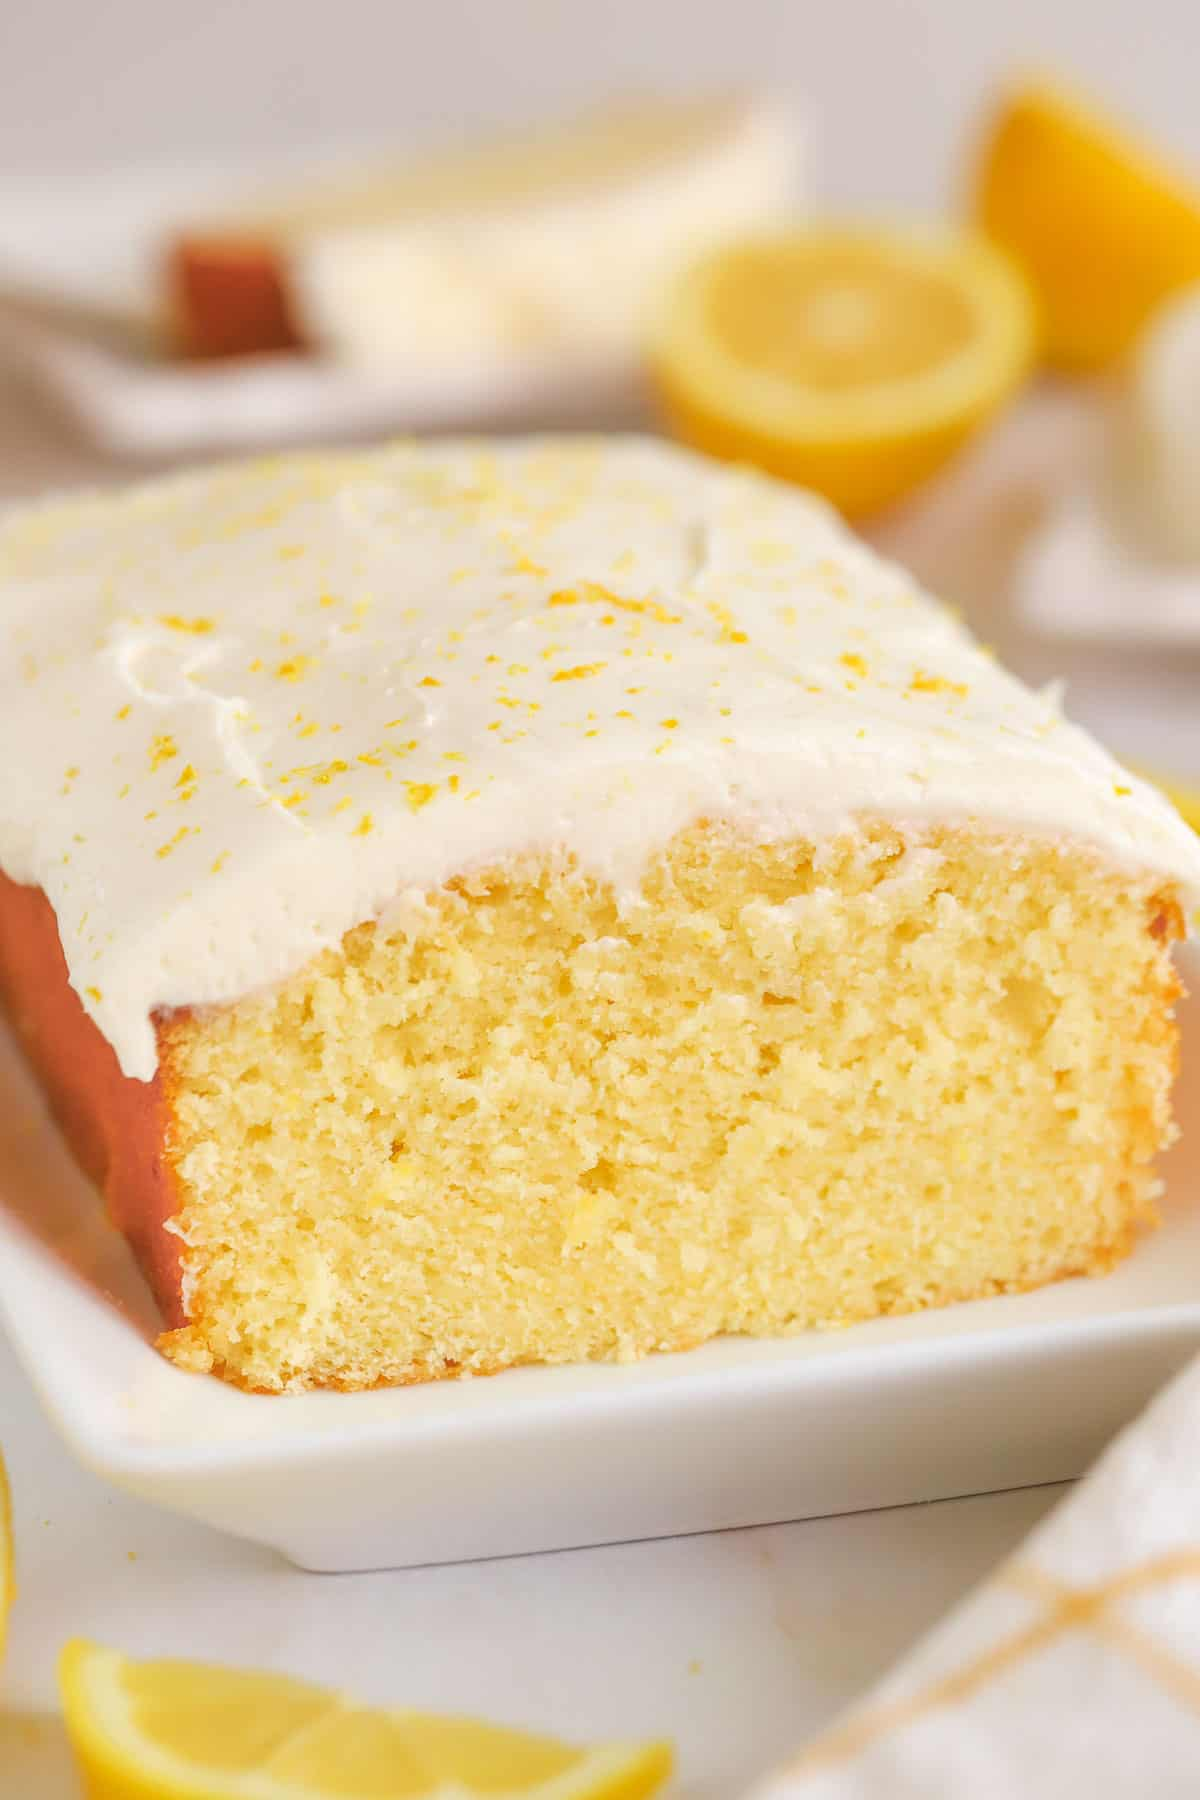 Lemon loaf cake topped with frosting on a white plate.